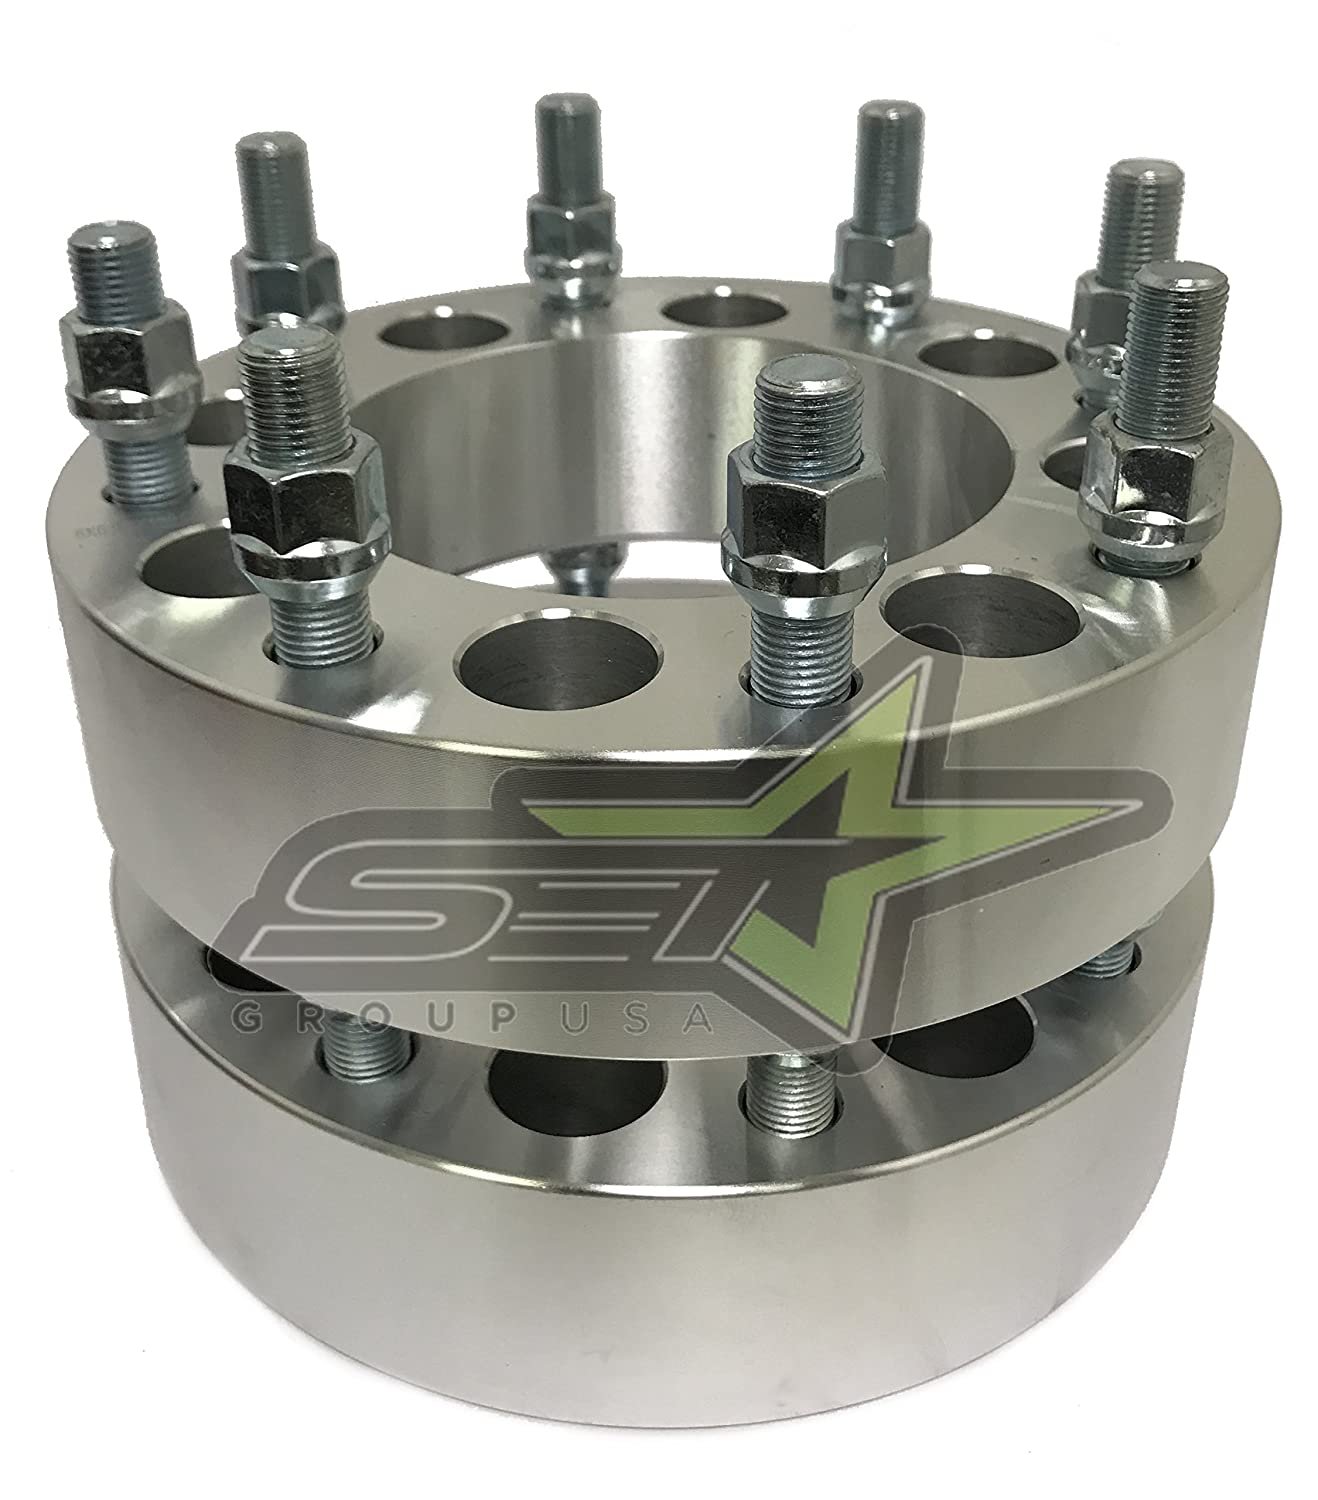 Spacers 2 Inches Thick Use 8x170 Wheels On 8x6.5 Trucks SET Group USA 8x6.5 to 8x170 Wheel Adapters 4